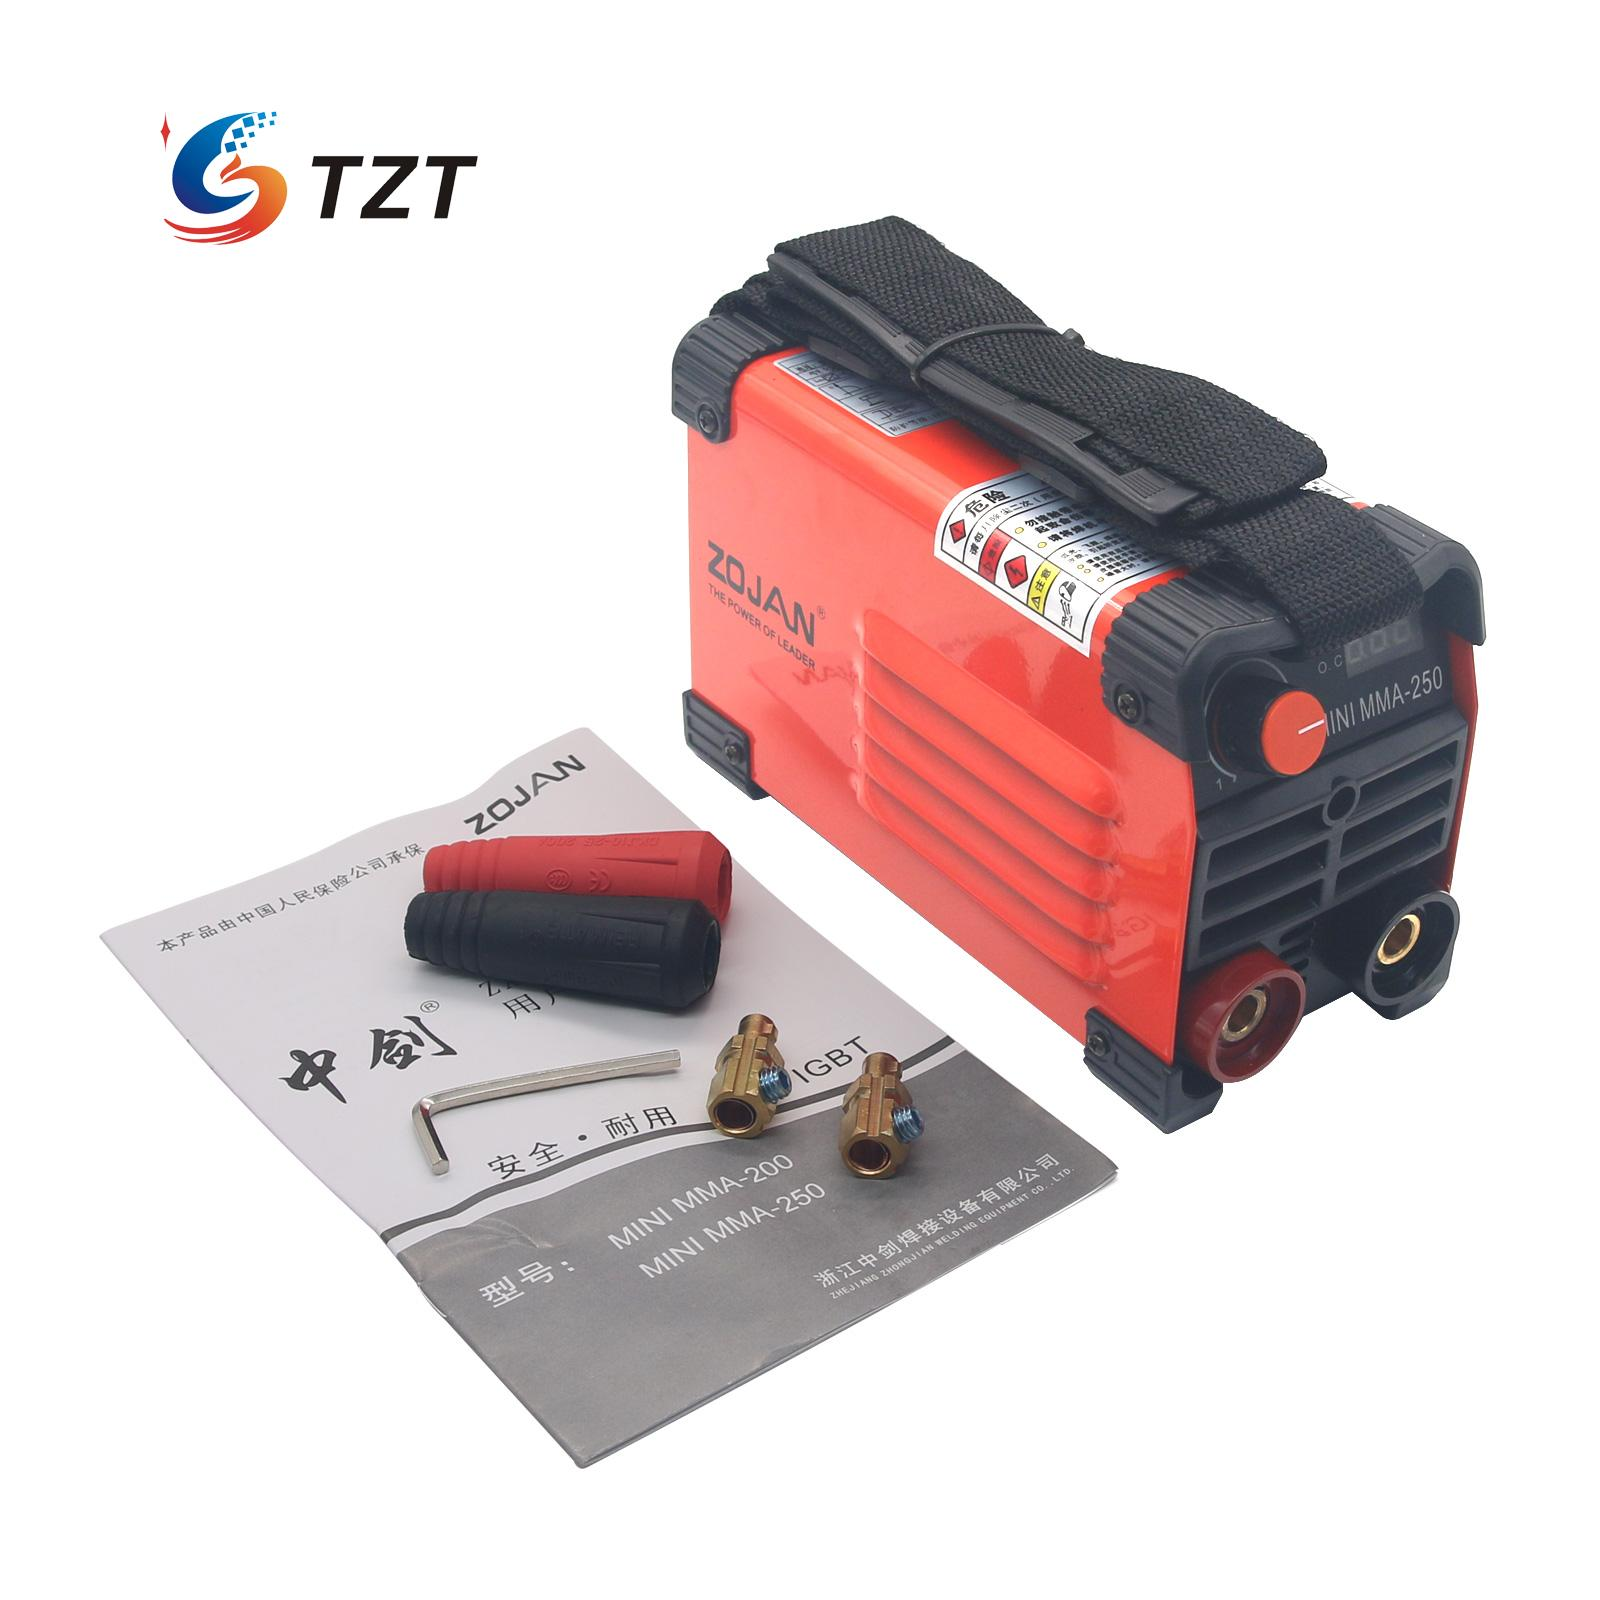 Handheld Mini MMA Electric Welder 220V 20-250A Inverter ARC Welding Machine Tool inverter electric welder circuit board general money welding machine 200 drive board